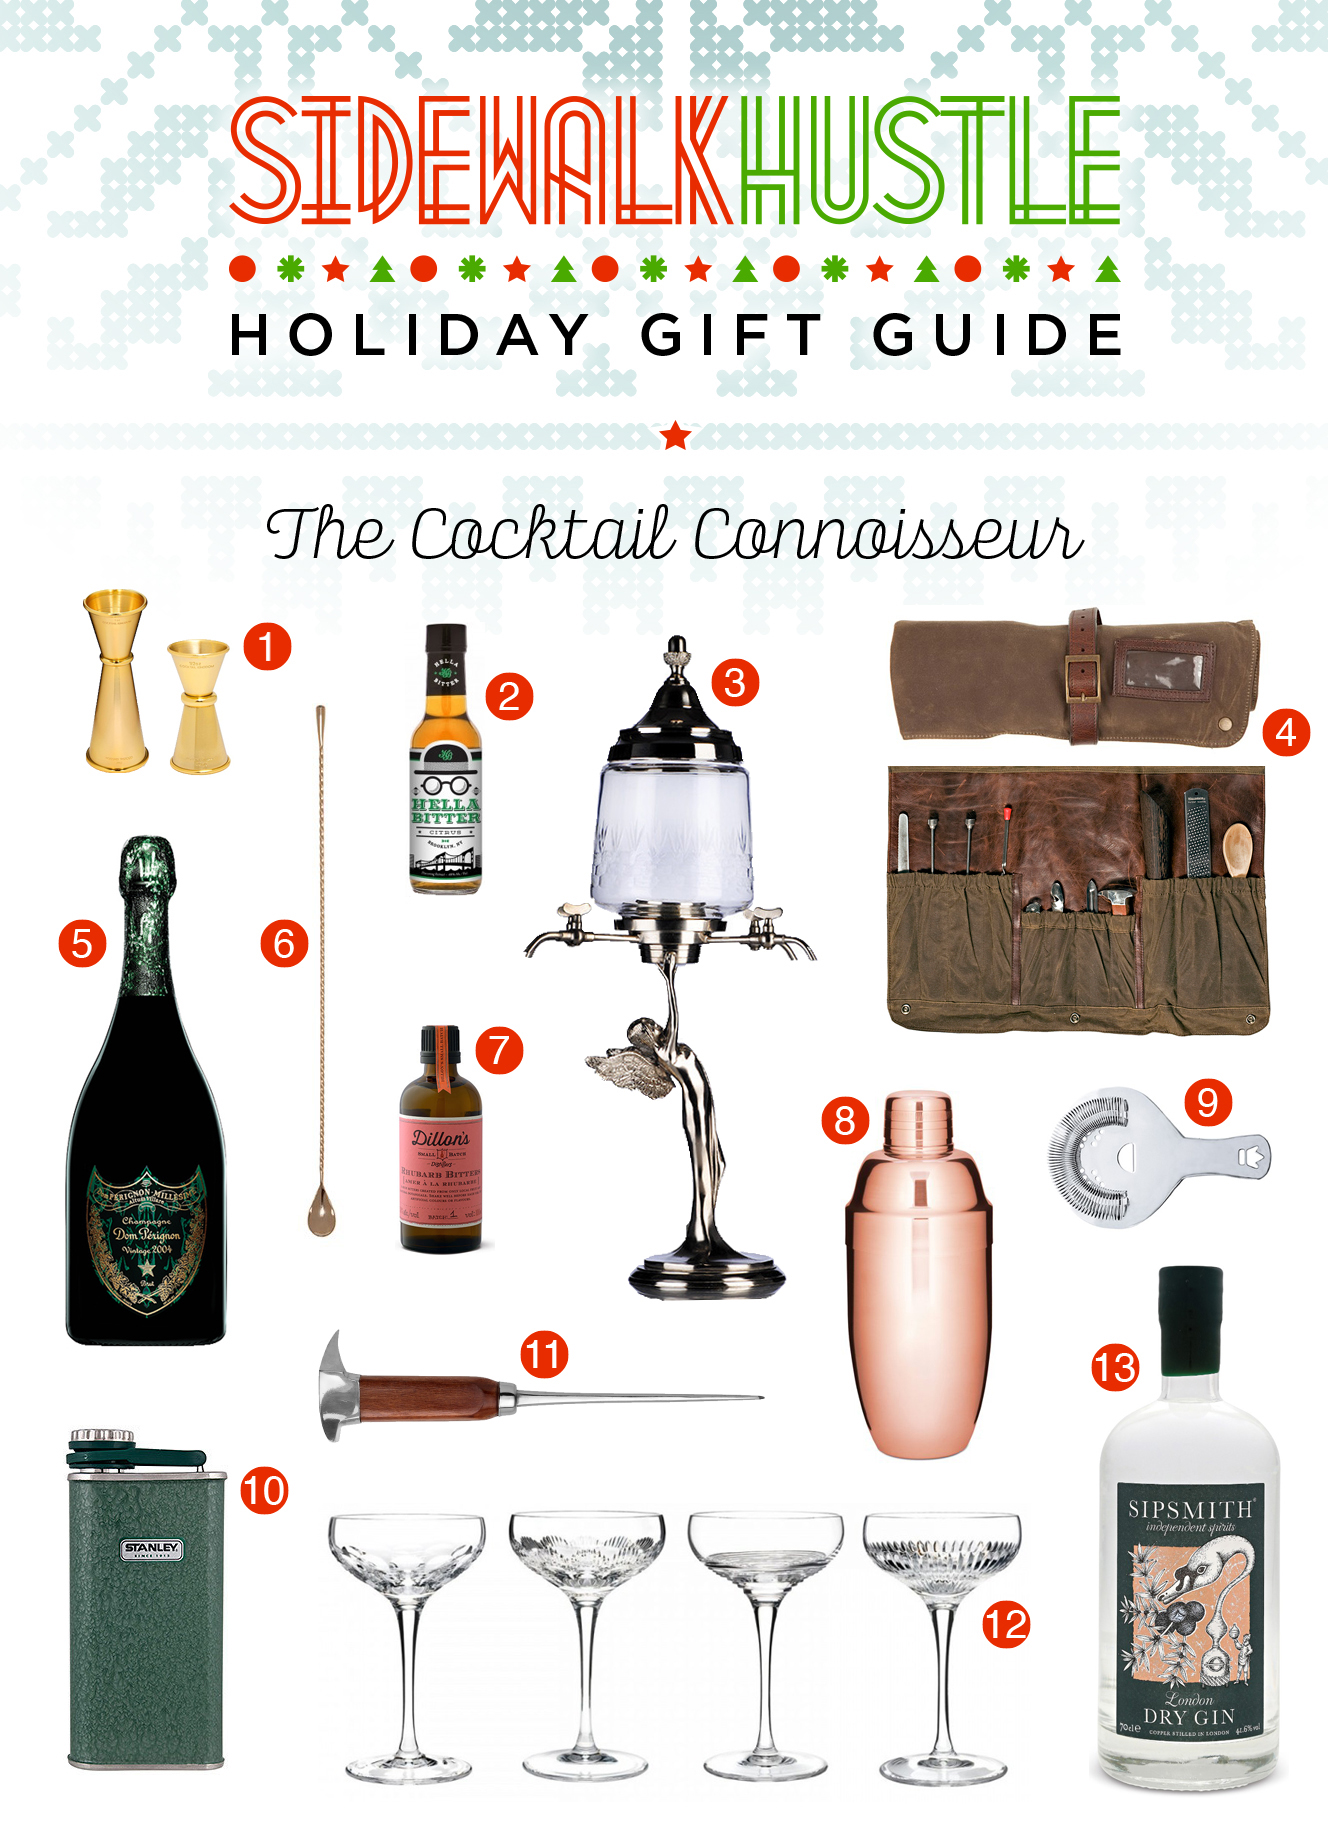 Cocktail Connoisseur Gift Guide 2014